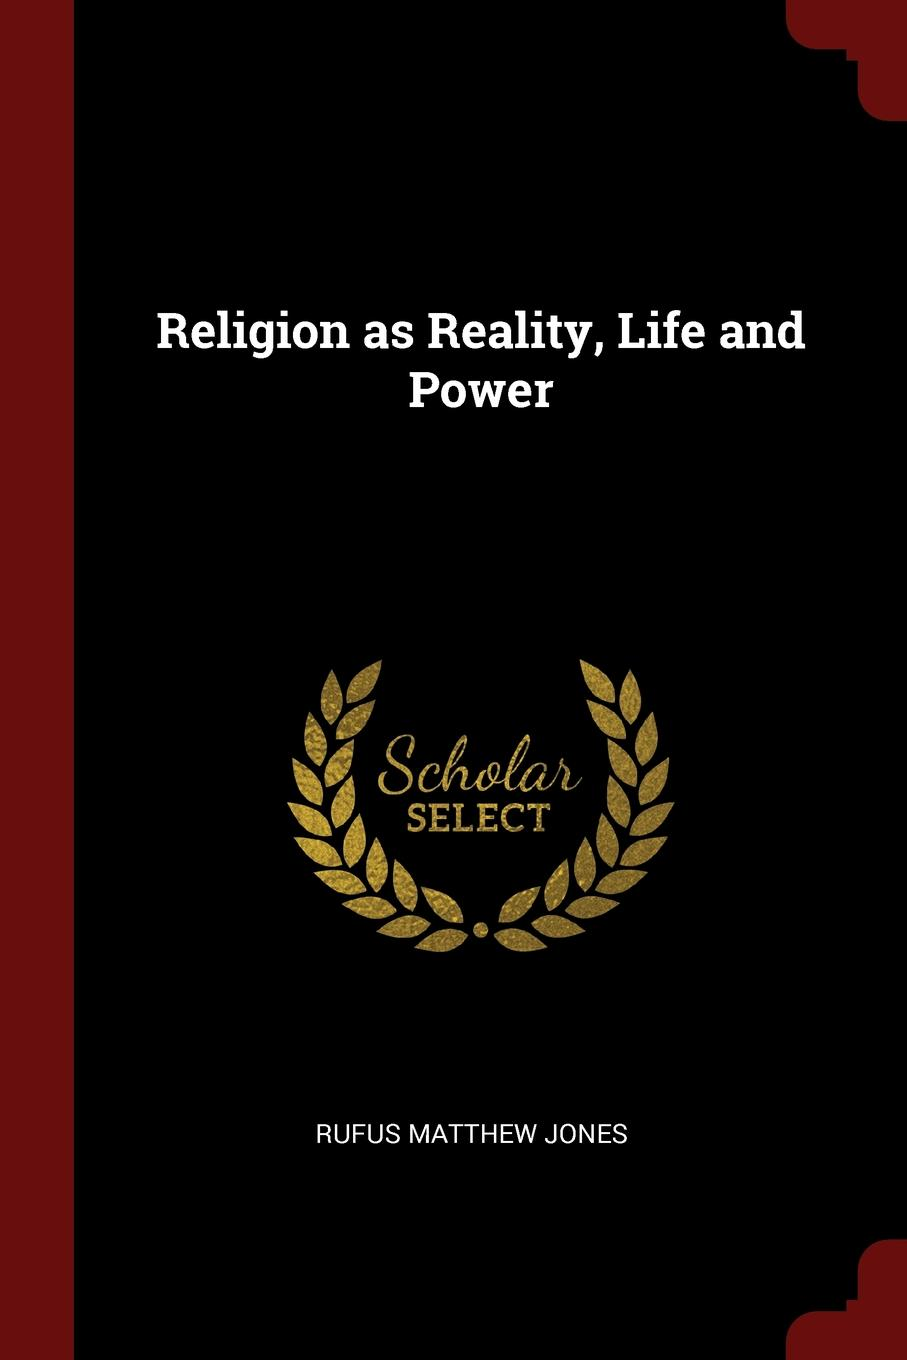 Religion as Reality, Life and Power